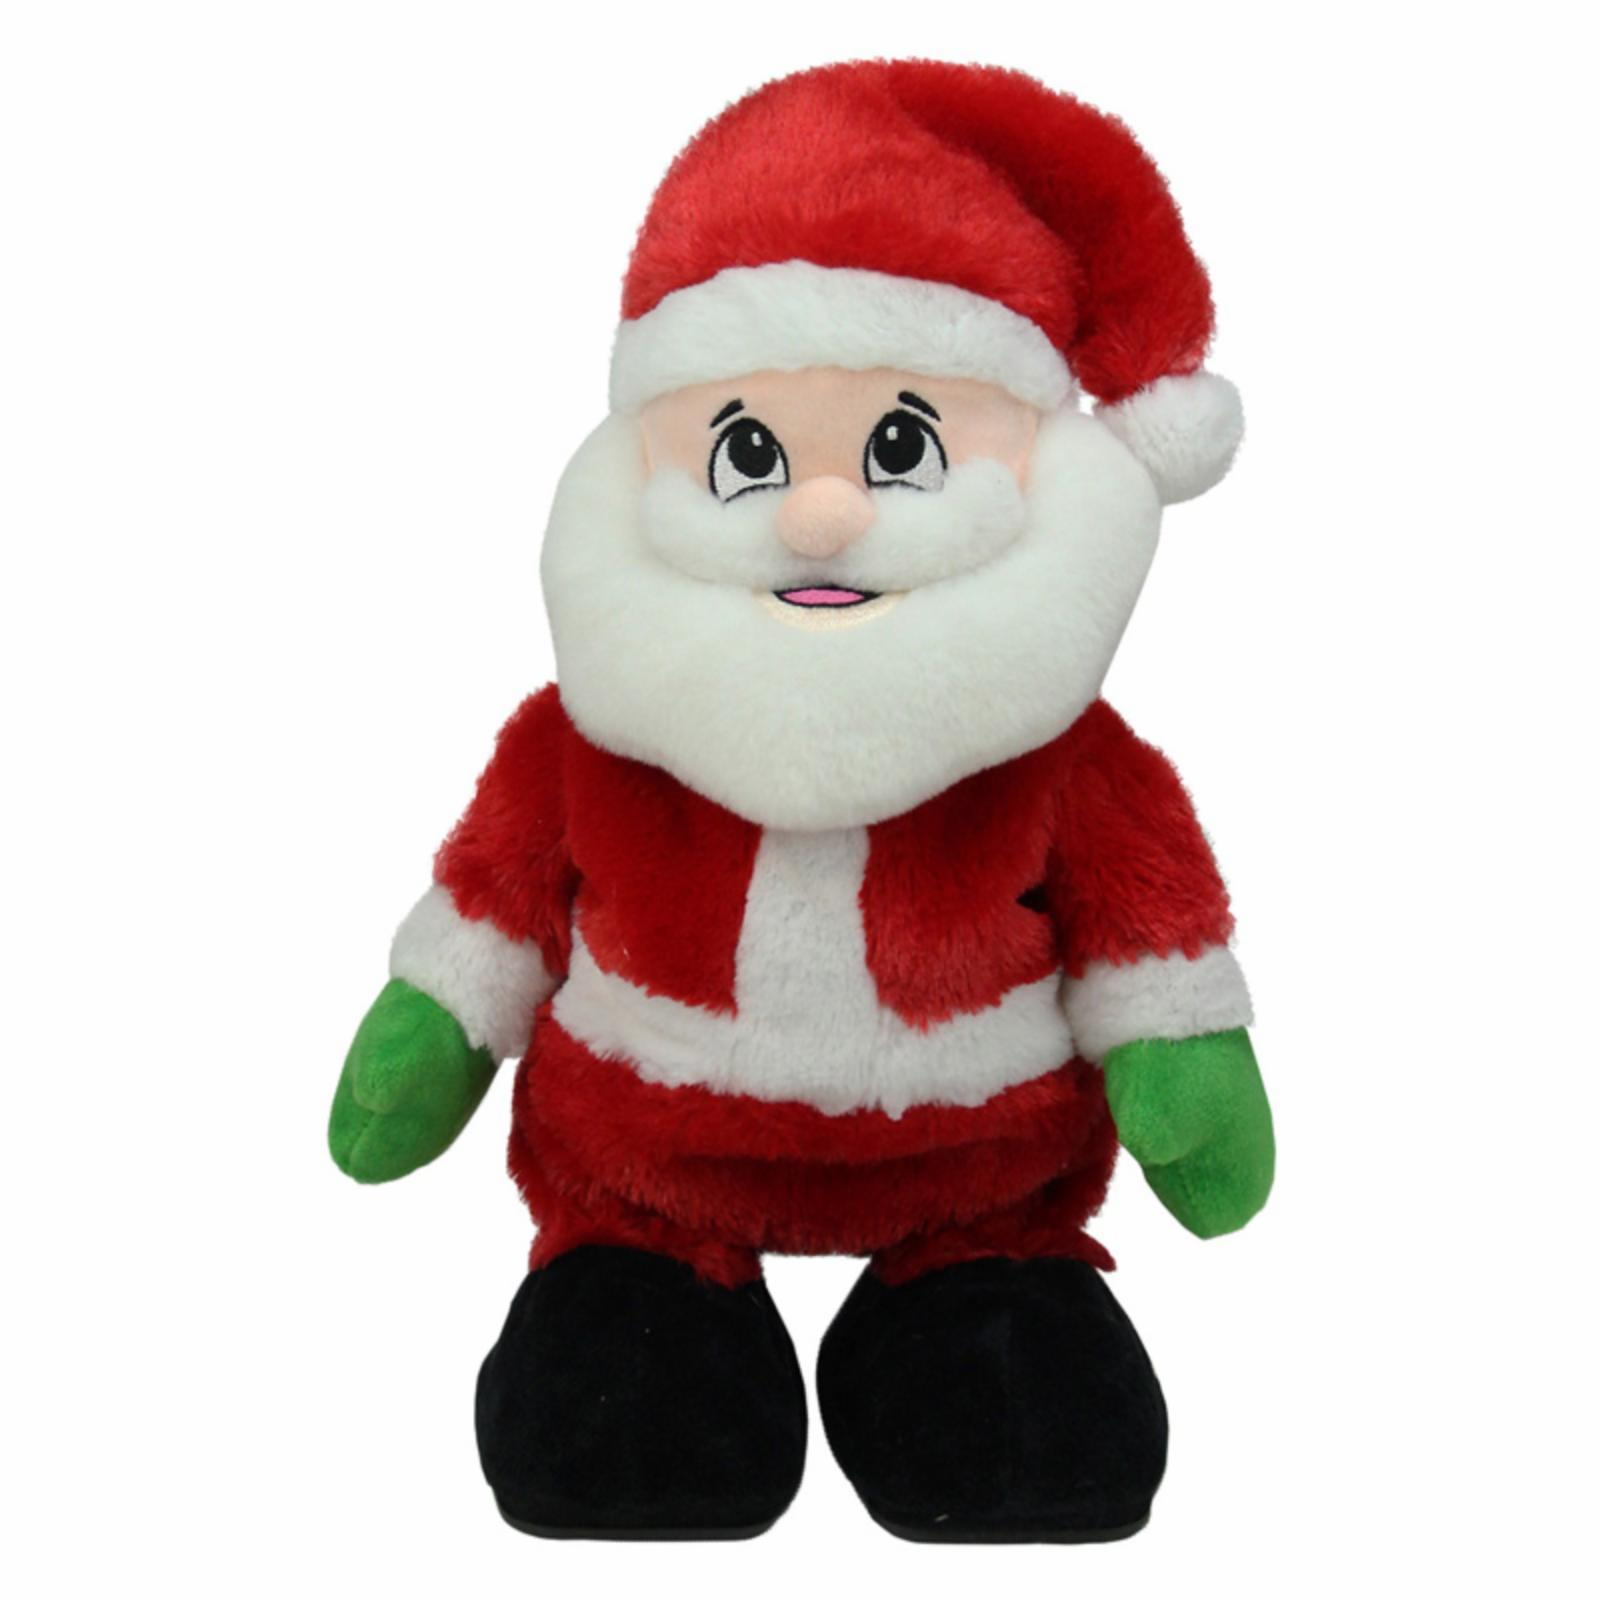 Northlight 12 in. Animated Tickle n Laugh Santa Claus Plu...